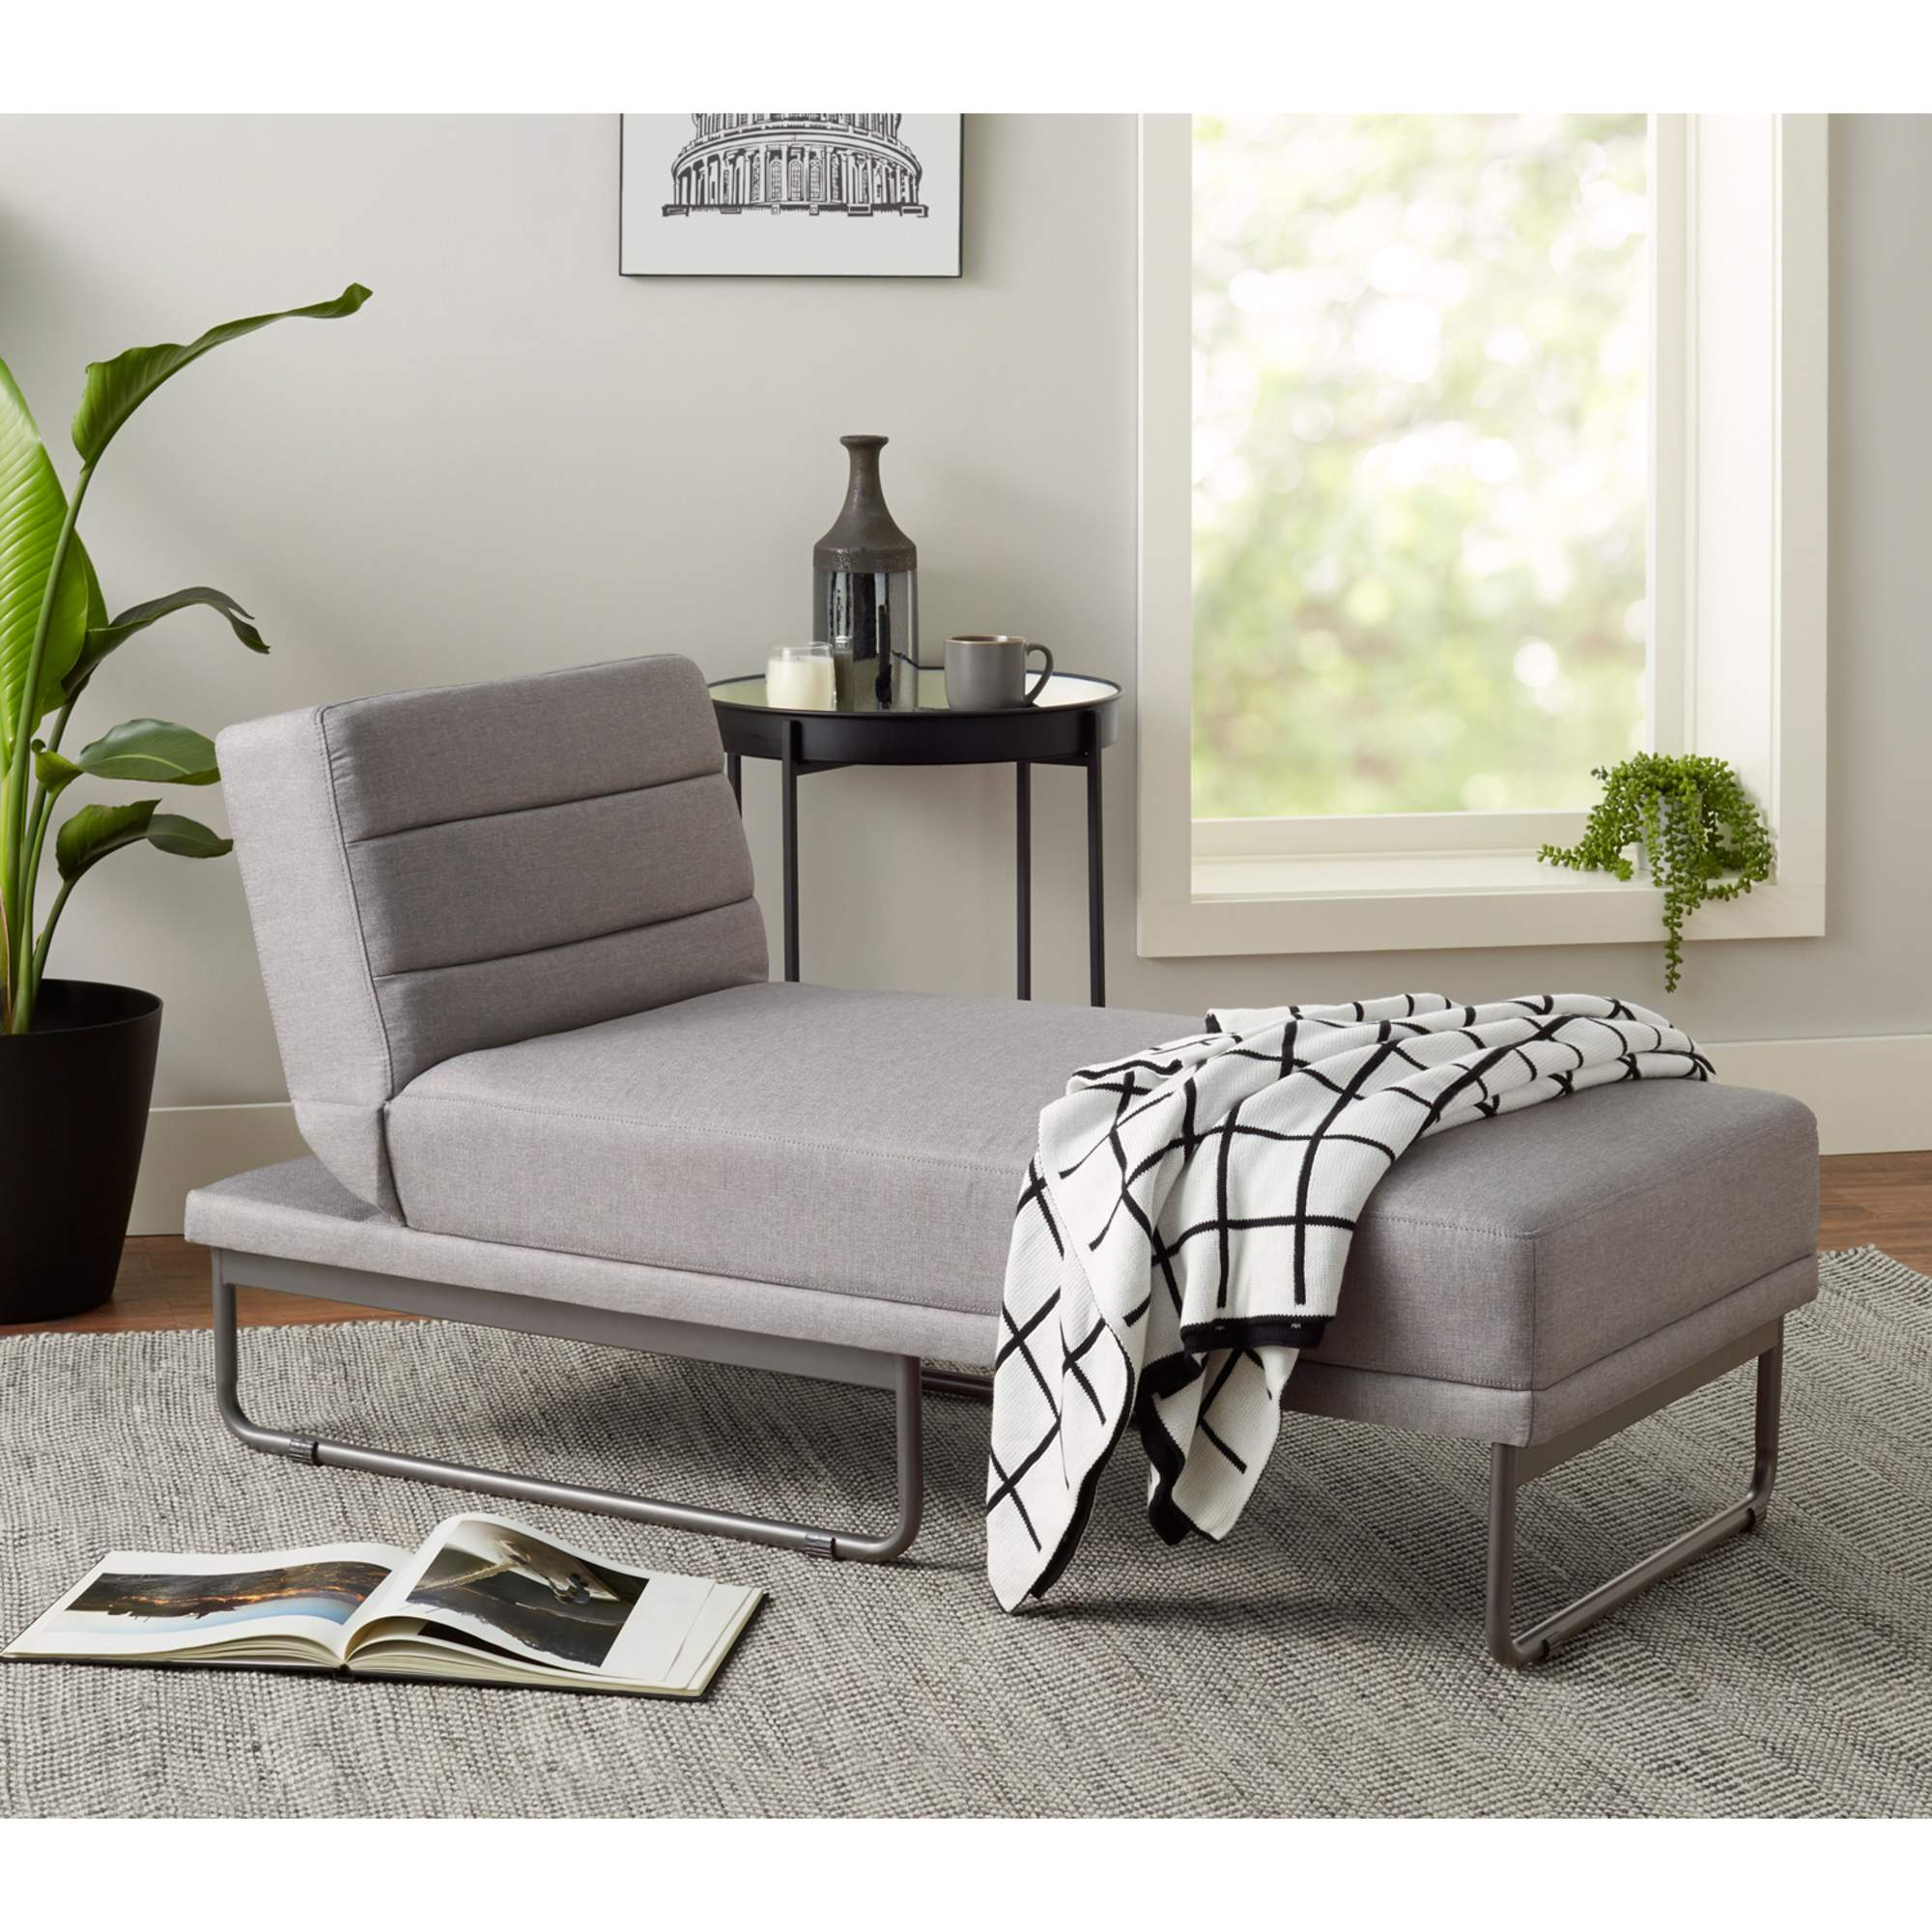 Mainstays Loop Chaise Lounge